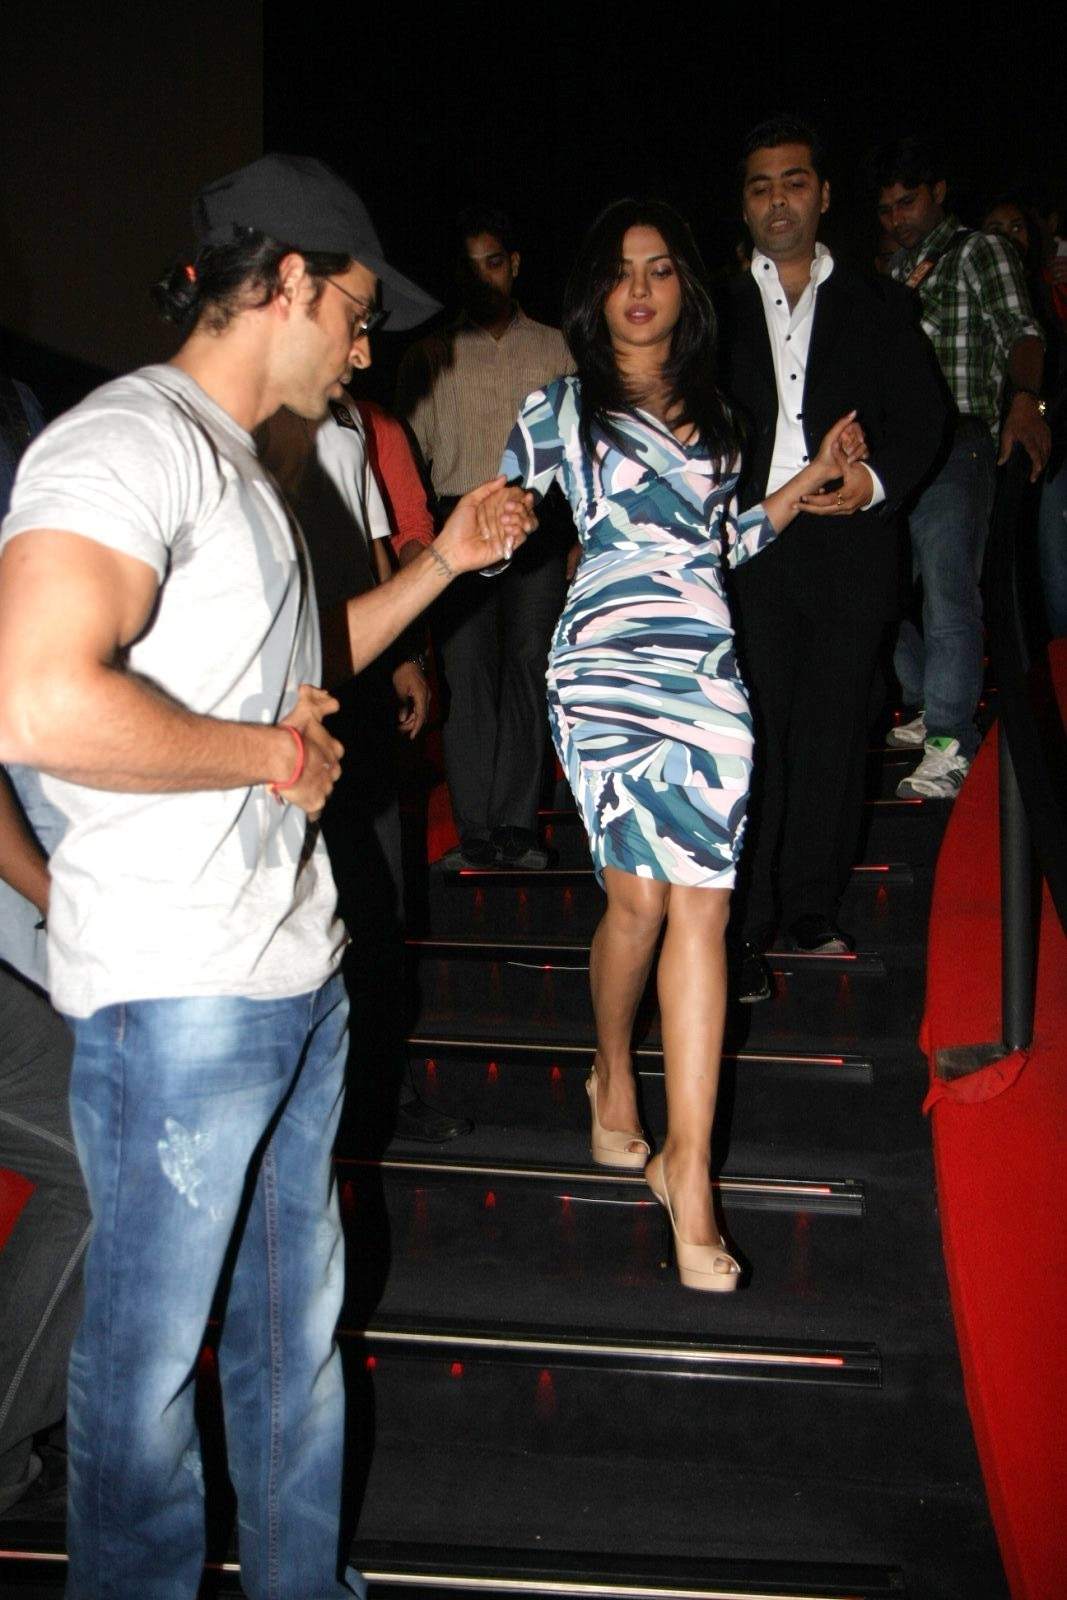 hrithik roshan helping priyanka chopra walk down imax stairs at film